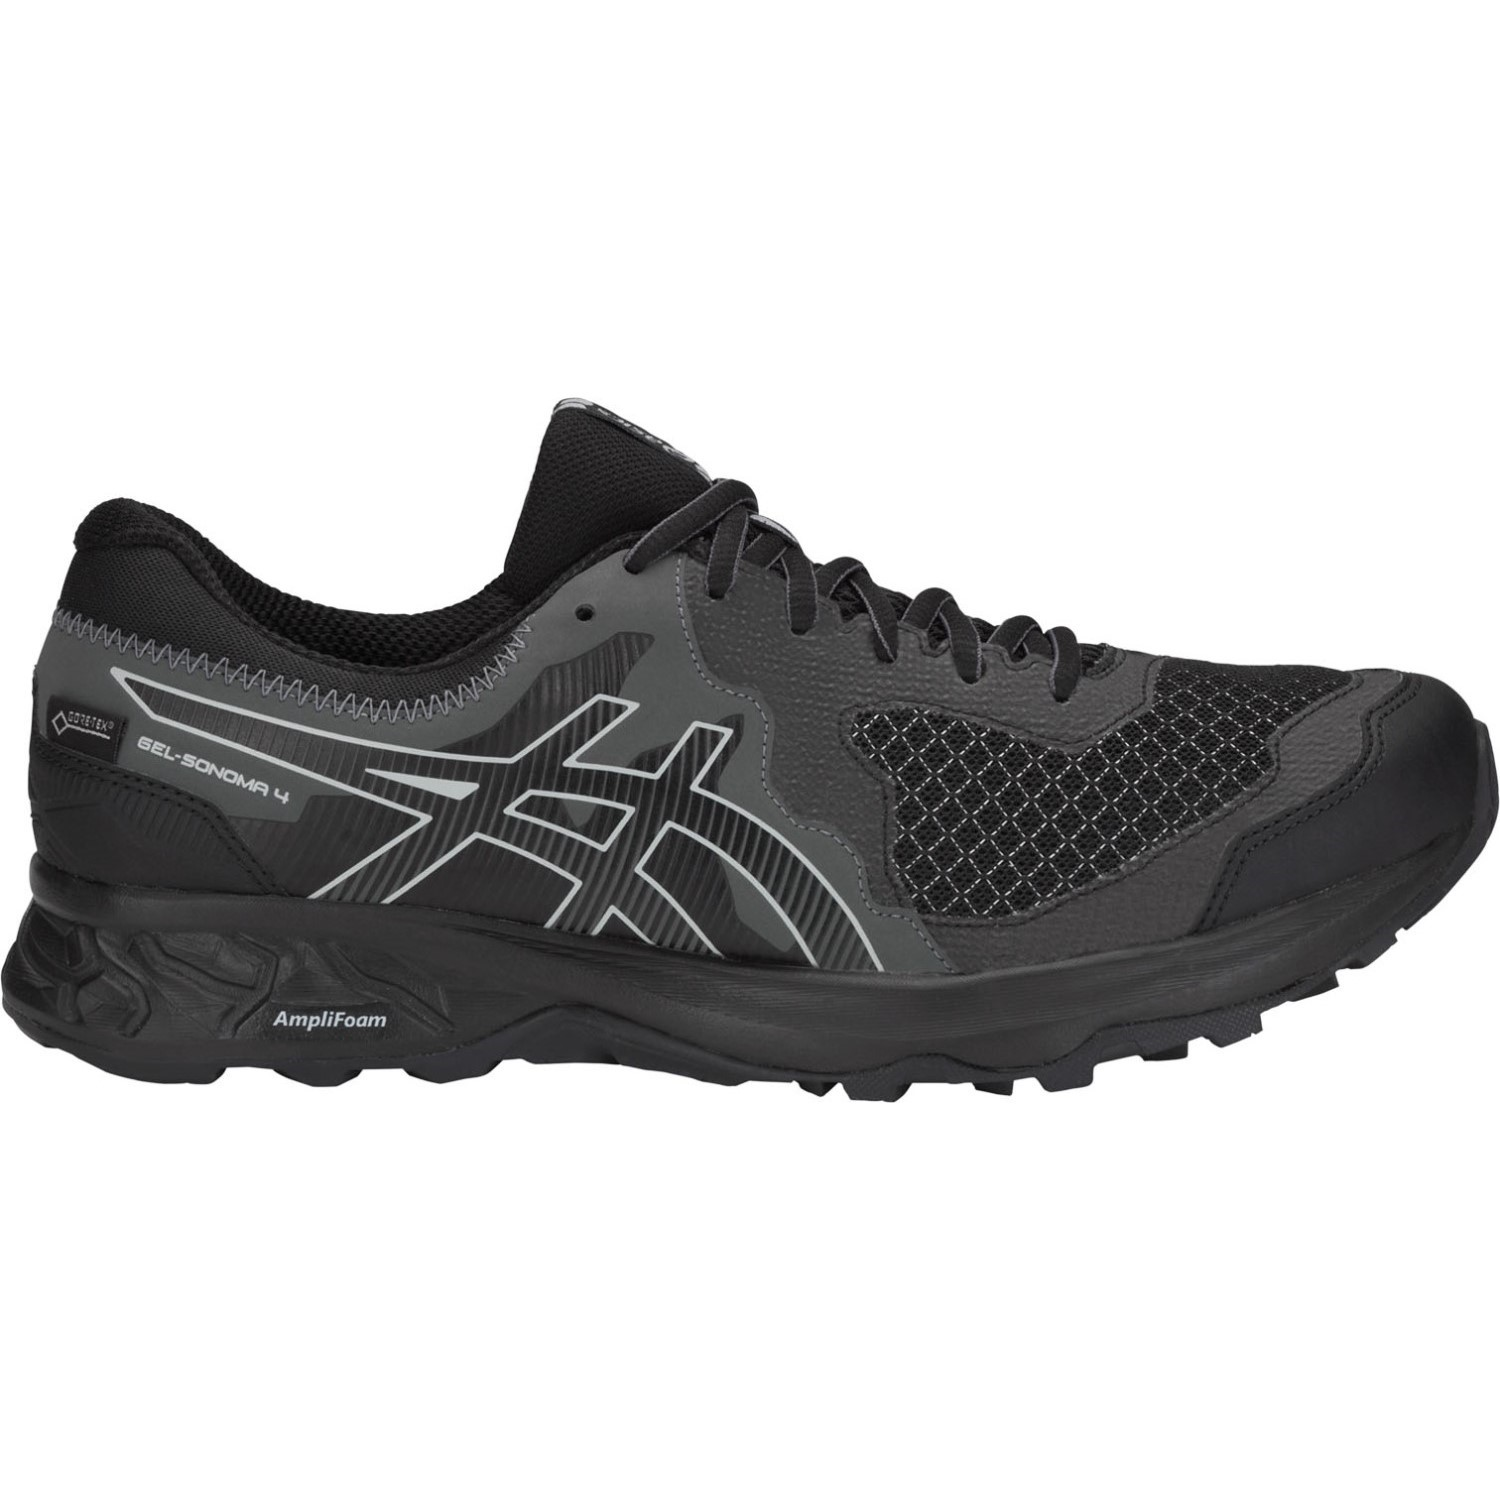 new style 31612 f6a13 Asics Gel Sonoma 4 GTX - Mens Trail Running Shoes - Black Stone Grey